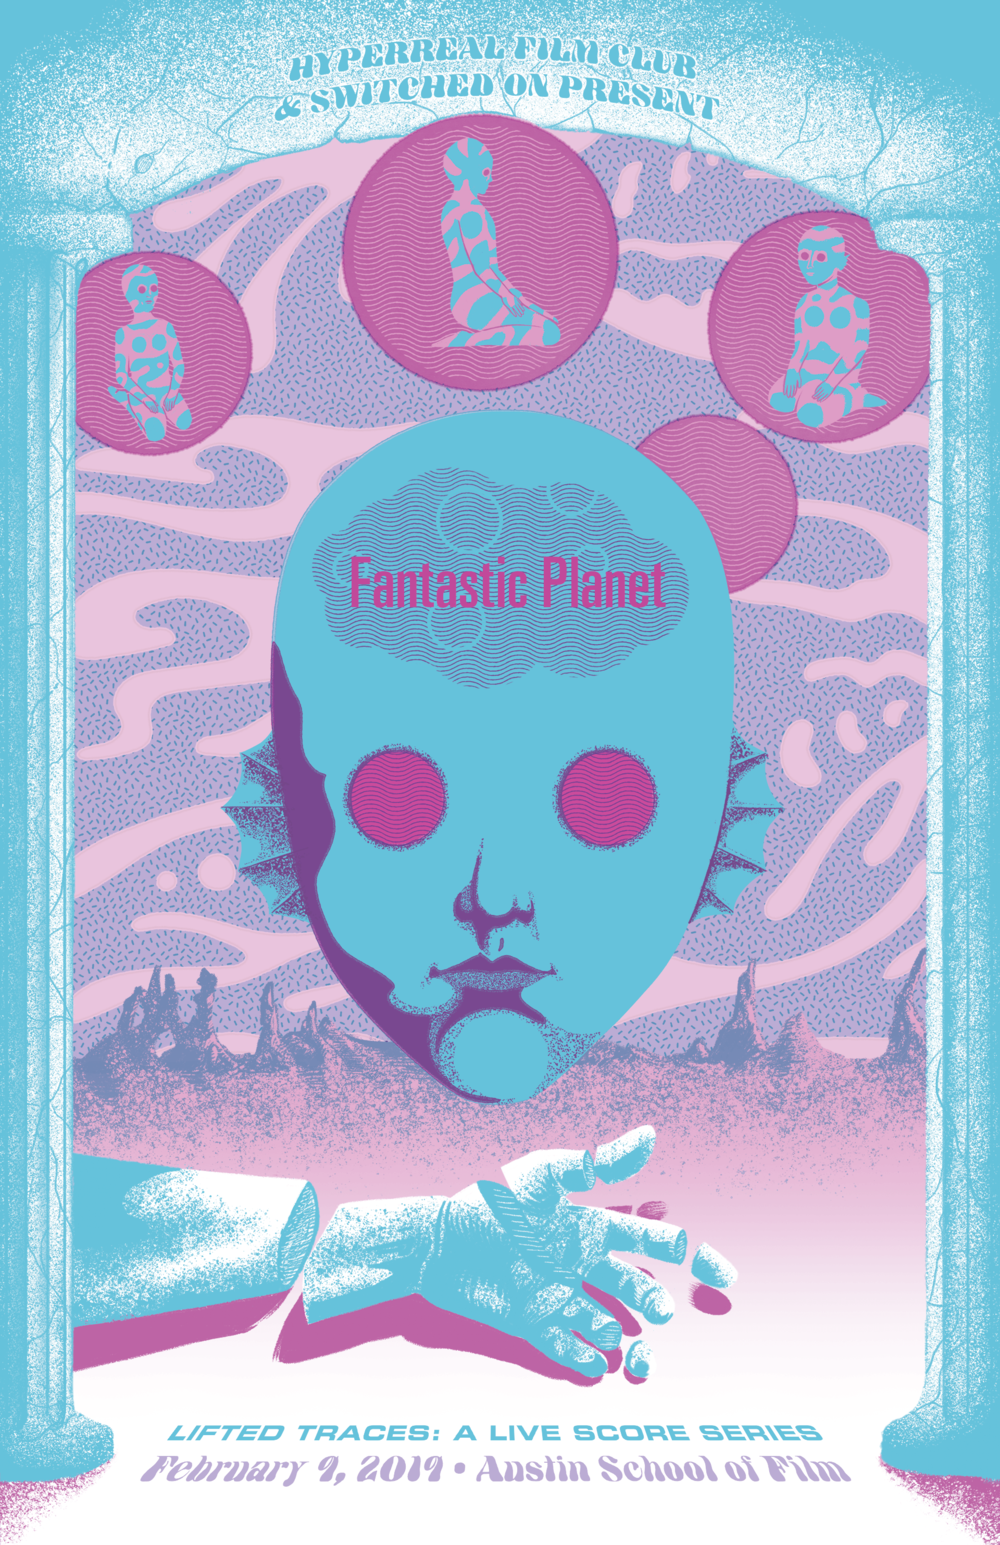 — LIFTED TRACES: A LIVE SCORE SERIES —     Hyperreal film club     &   Switched On     present:  FANTASTIC PLANET   (Live Scored by the Switched On Ensemble)    ONE NIGHT ONLY    —    February 9, 2019    at    Motion Media Arts Center